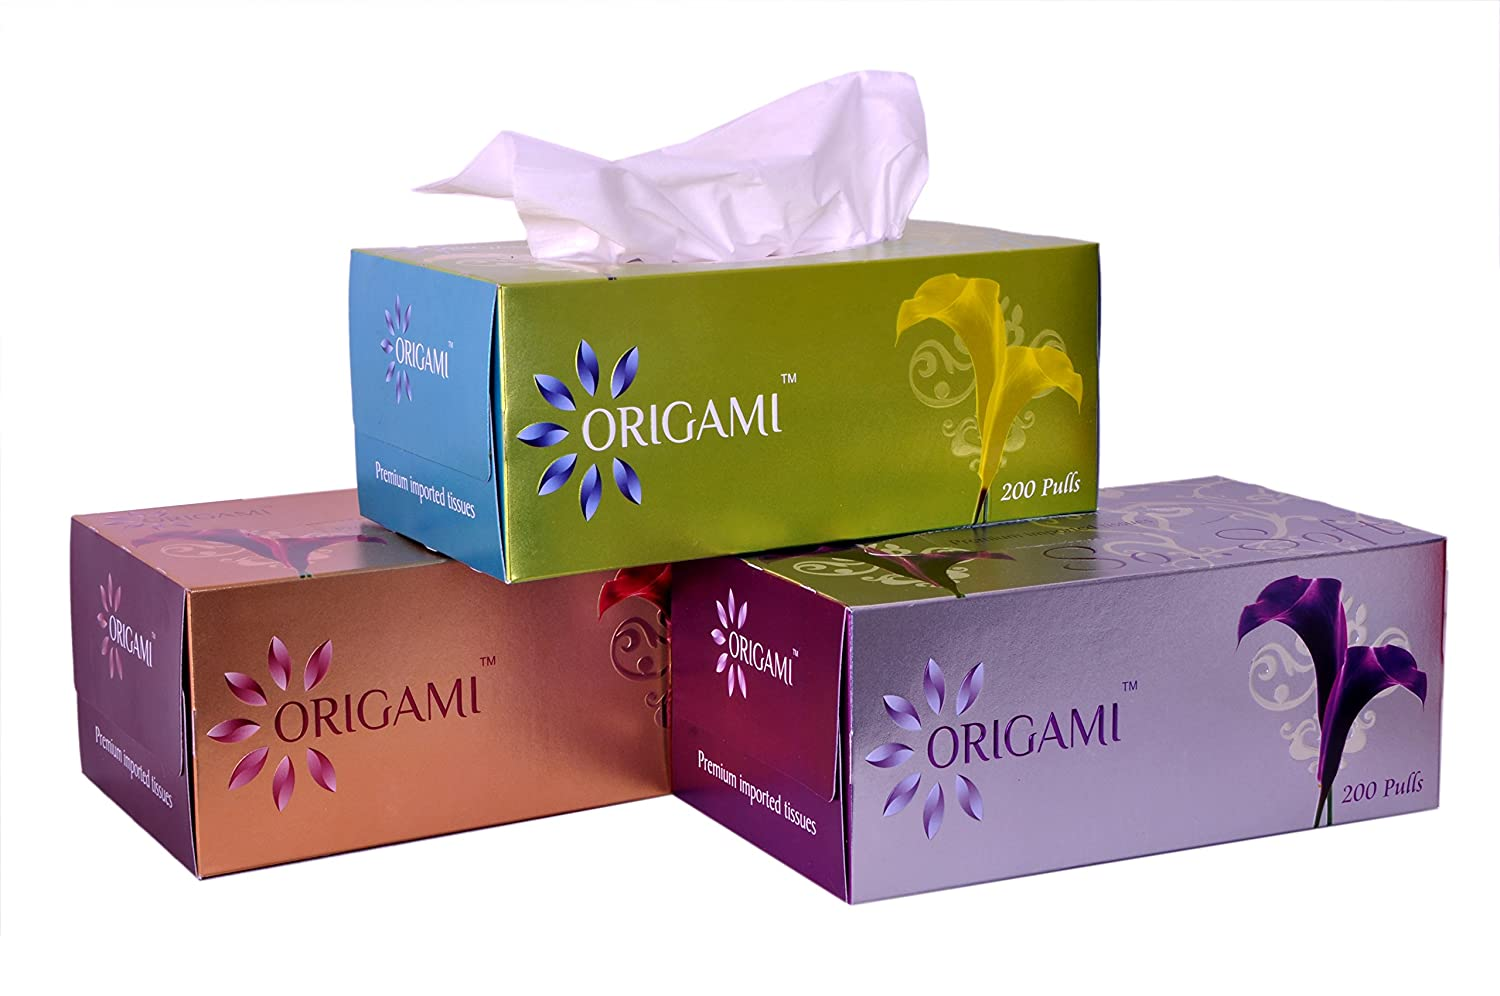 Origami So Soft 2 Ply Face Tissue Box - 200 Pulls(400 sheets) per box. Pack of 3 Boxes. Total 600 Pulls Amazon.in Health u0026 Personal Care  sc 1 st  Amazon India & Origami So Soft 2 Ply Face Tissue Box - 200 Pulls(400 sheets) per ... Aboutintivar.Com